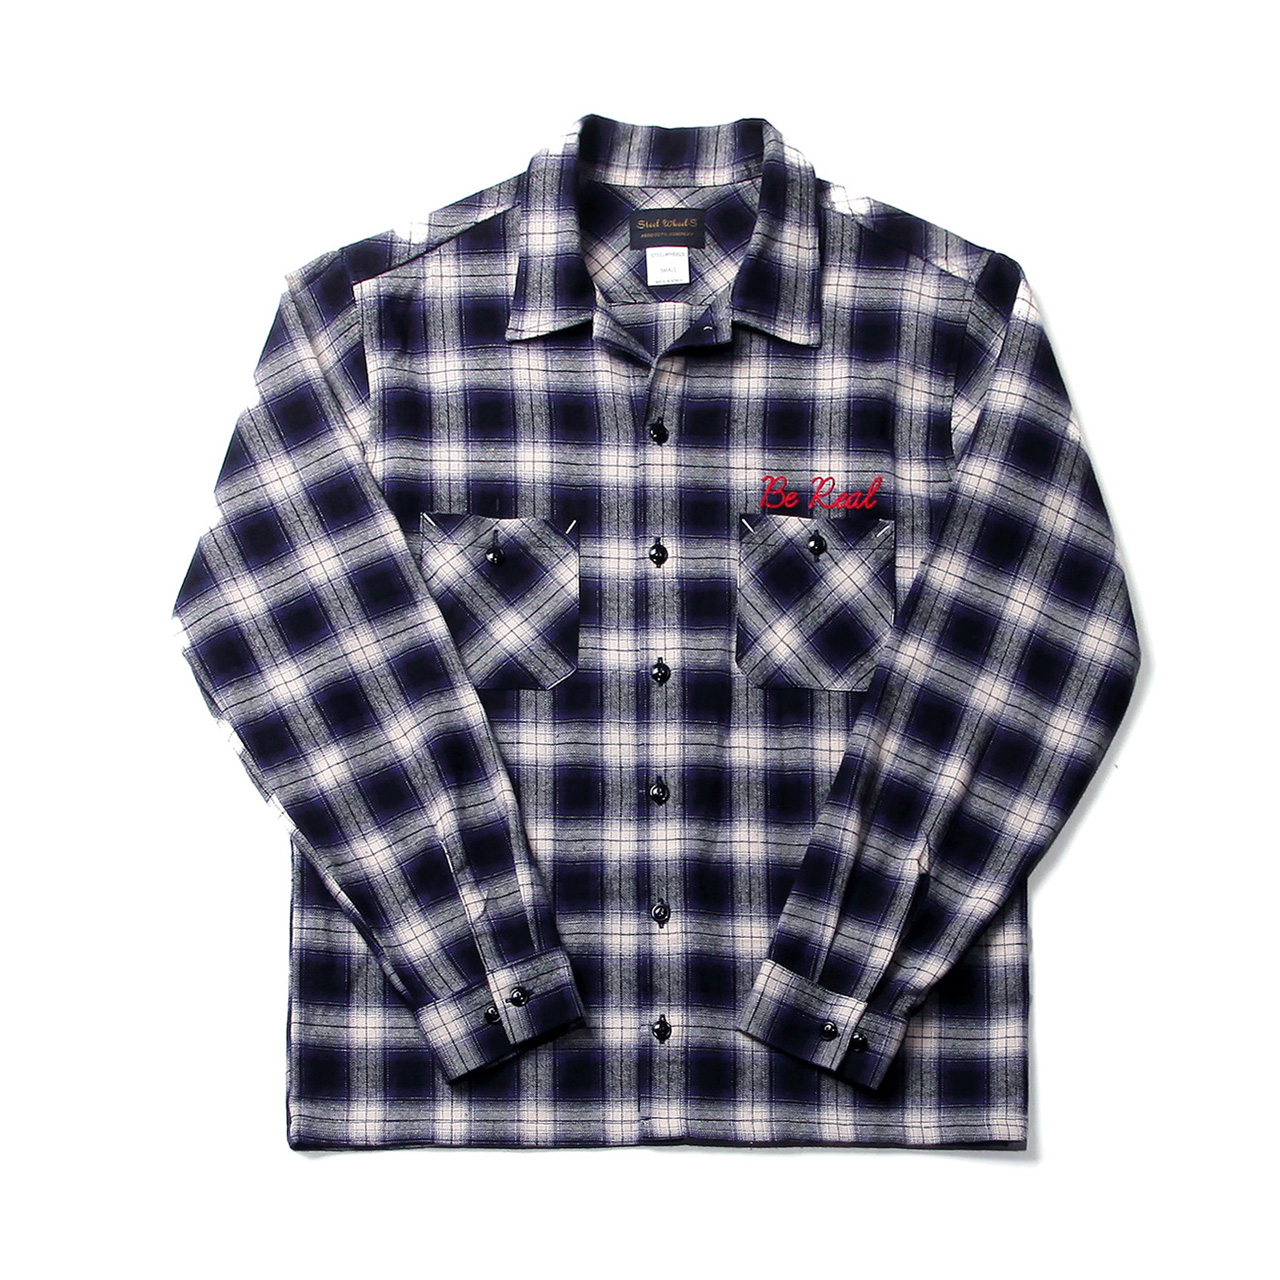 ORIGINAL CHECK SHIRT